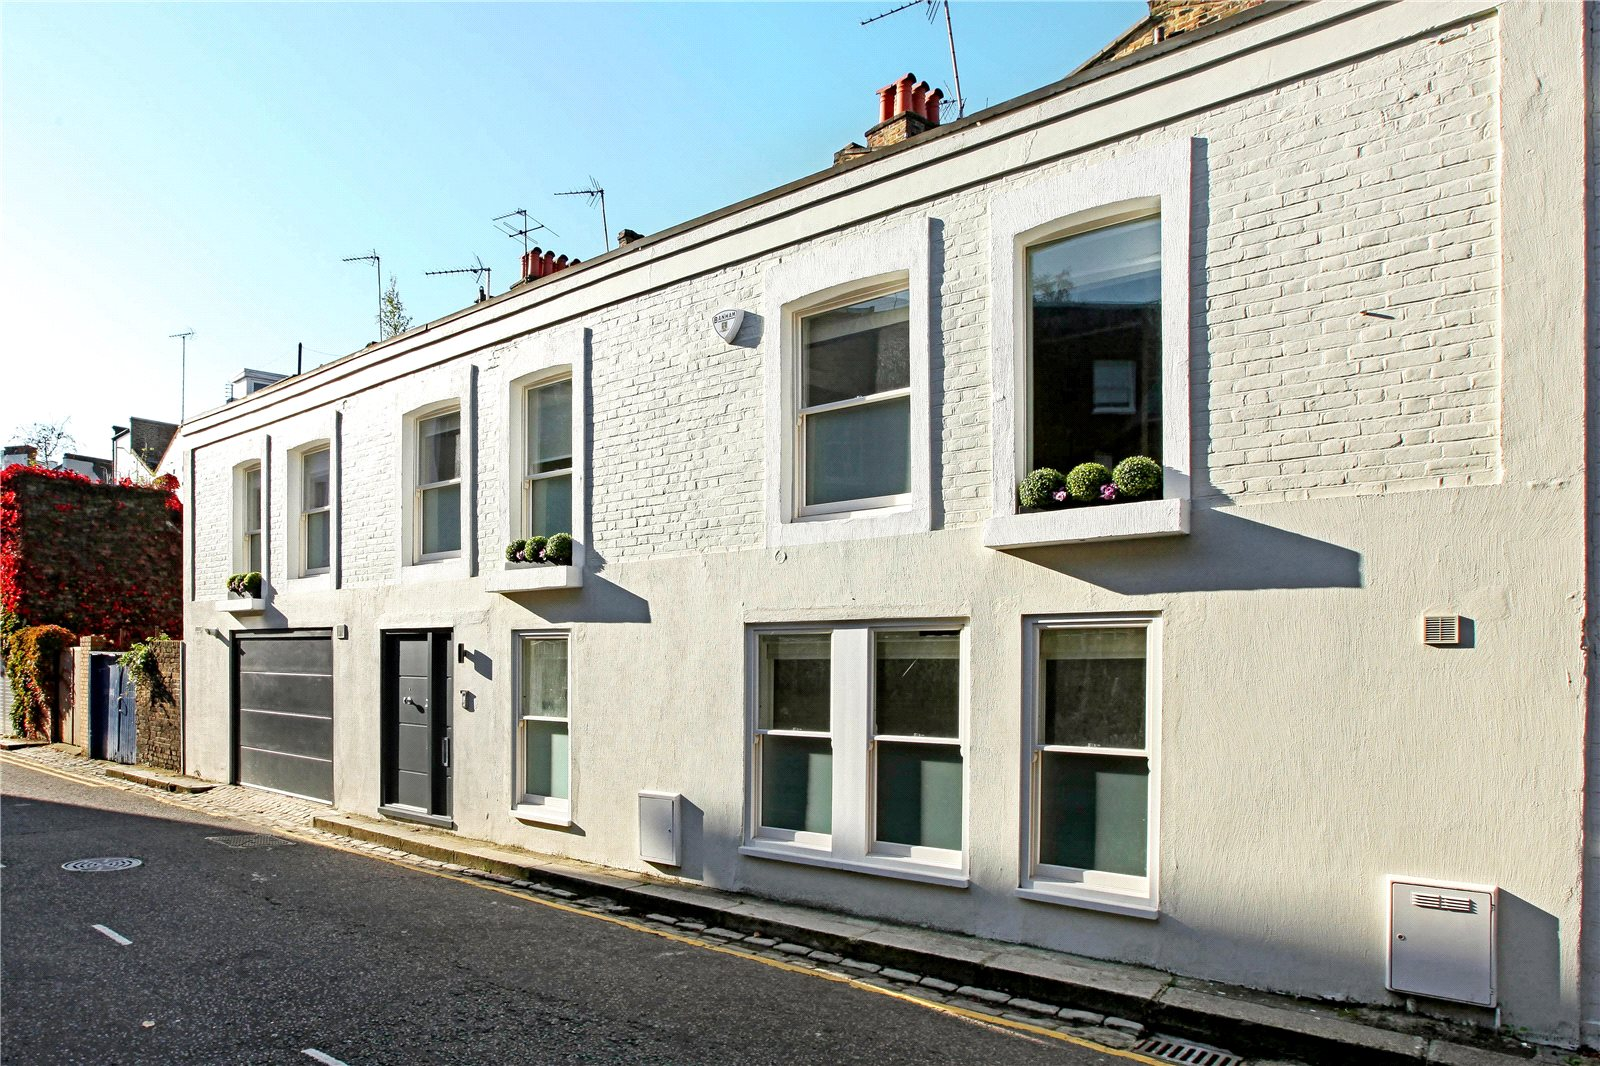 Holland Park Luxury Real Estate For Sale